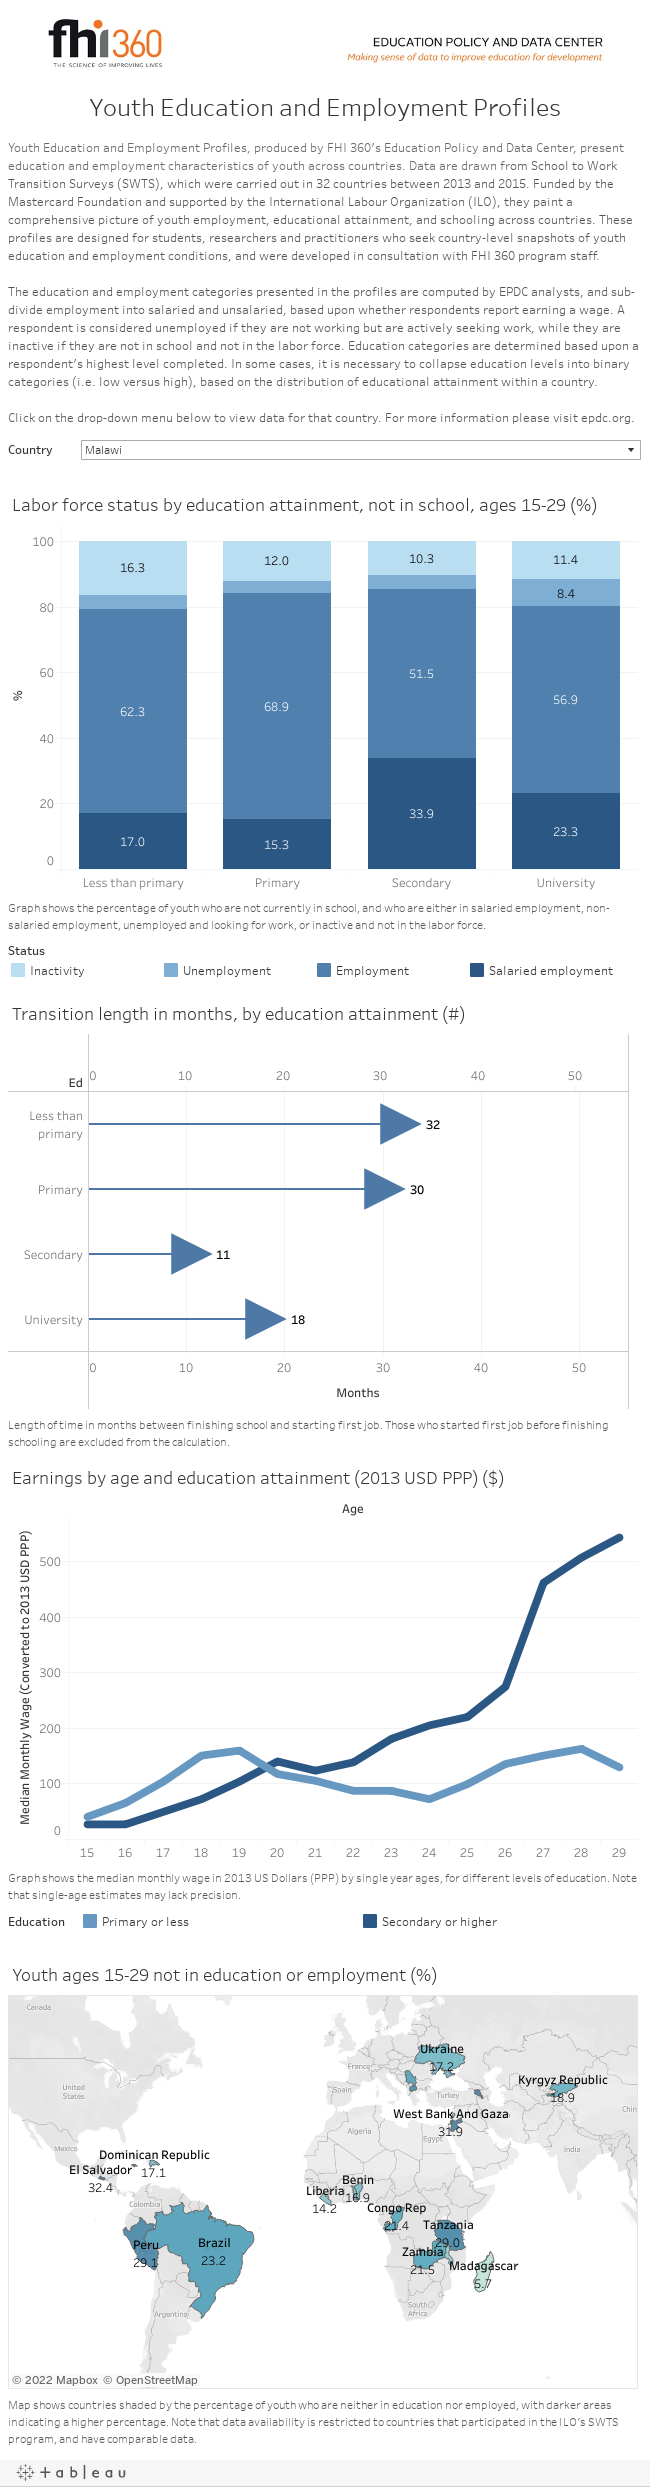 Youth Education and Employment Profiles